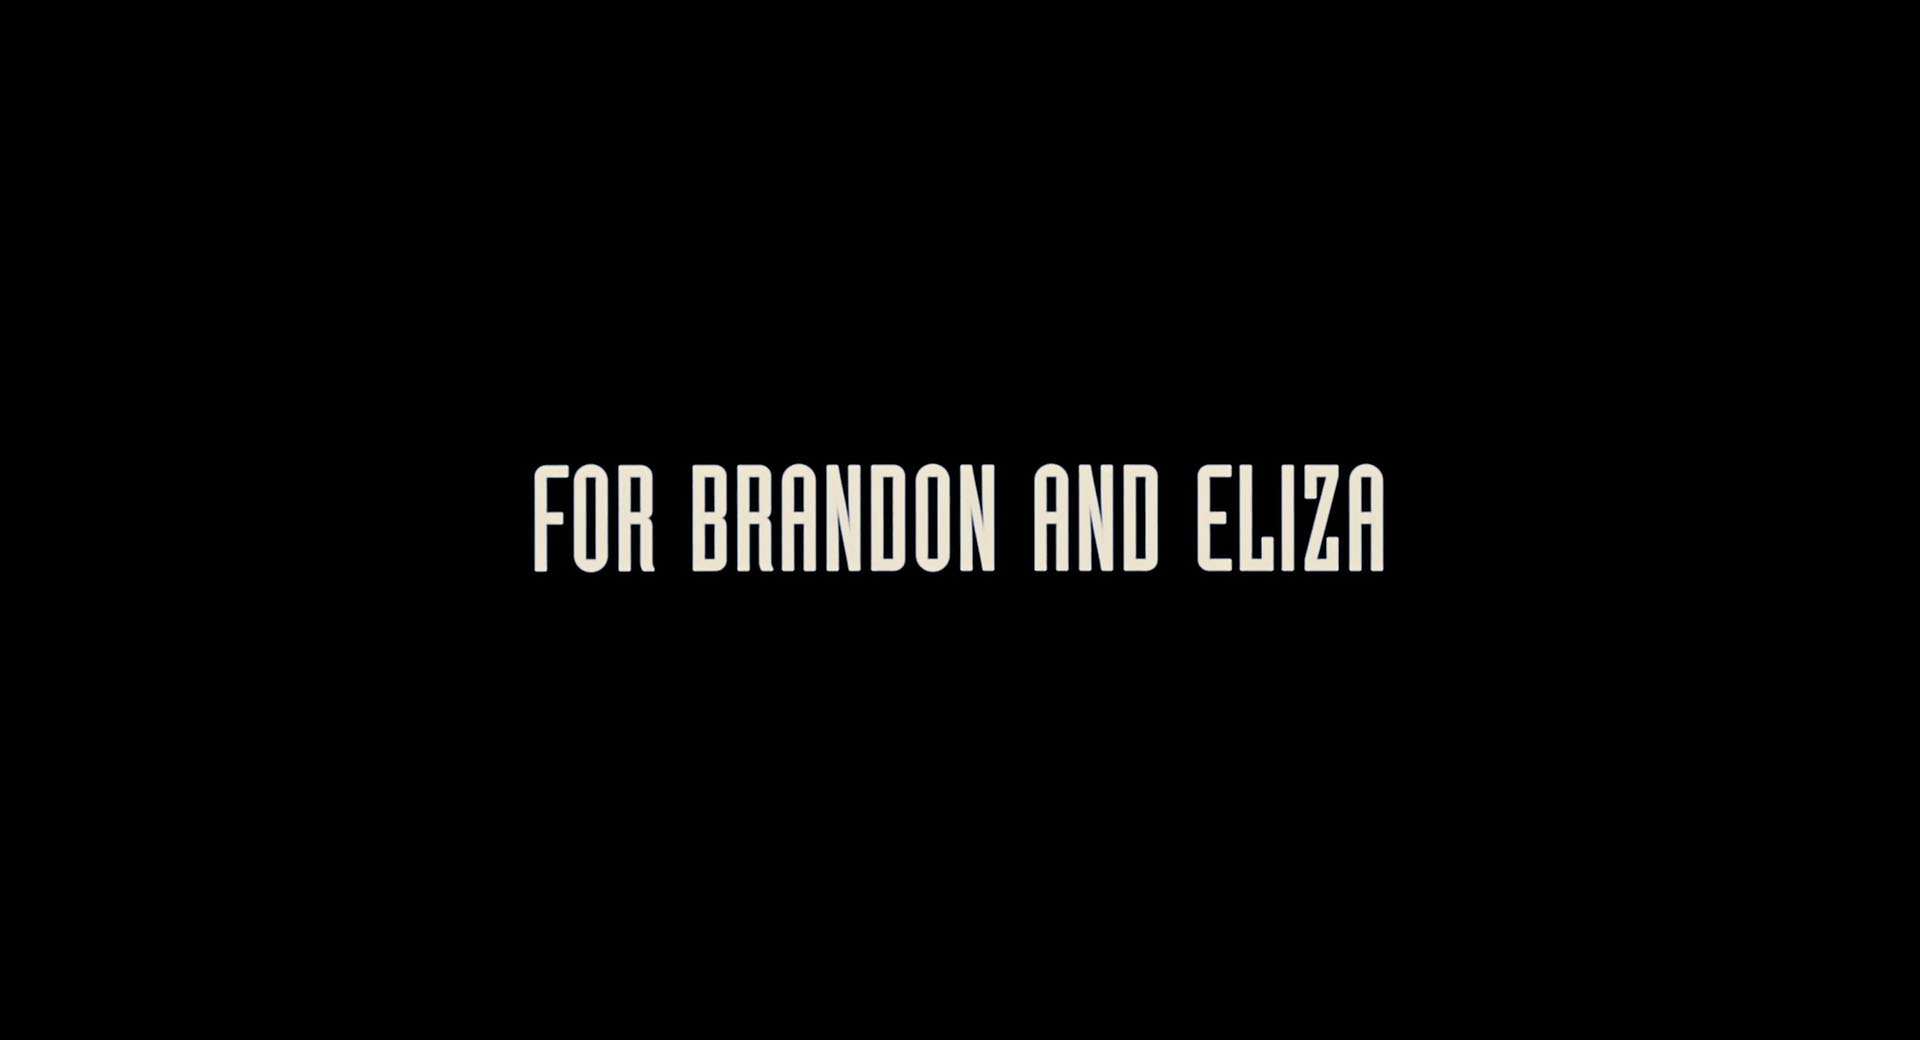 For Brandon and Eliza